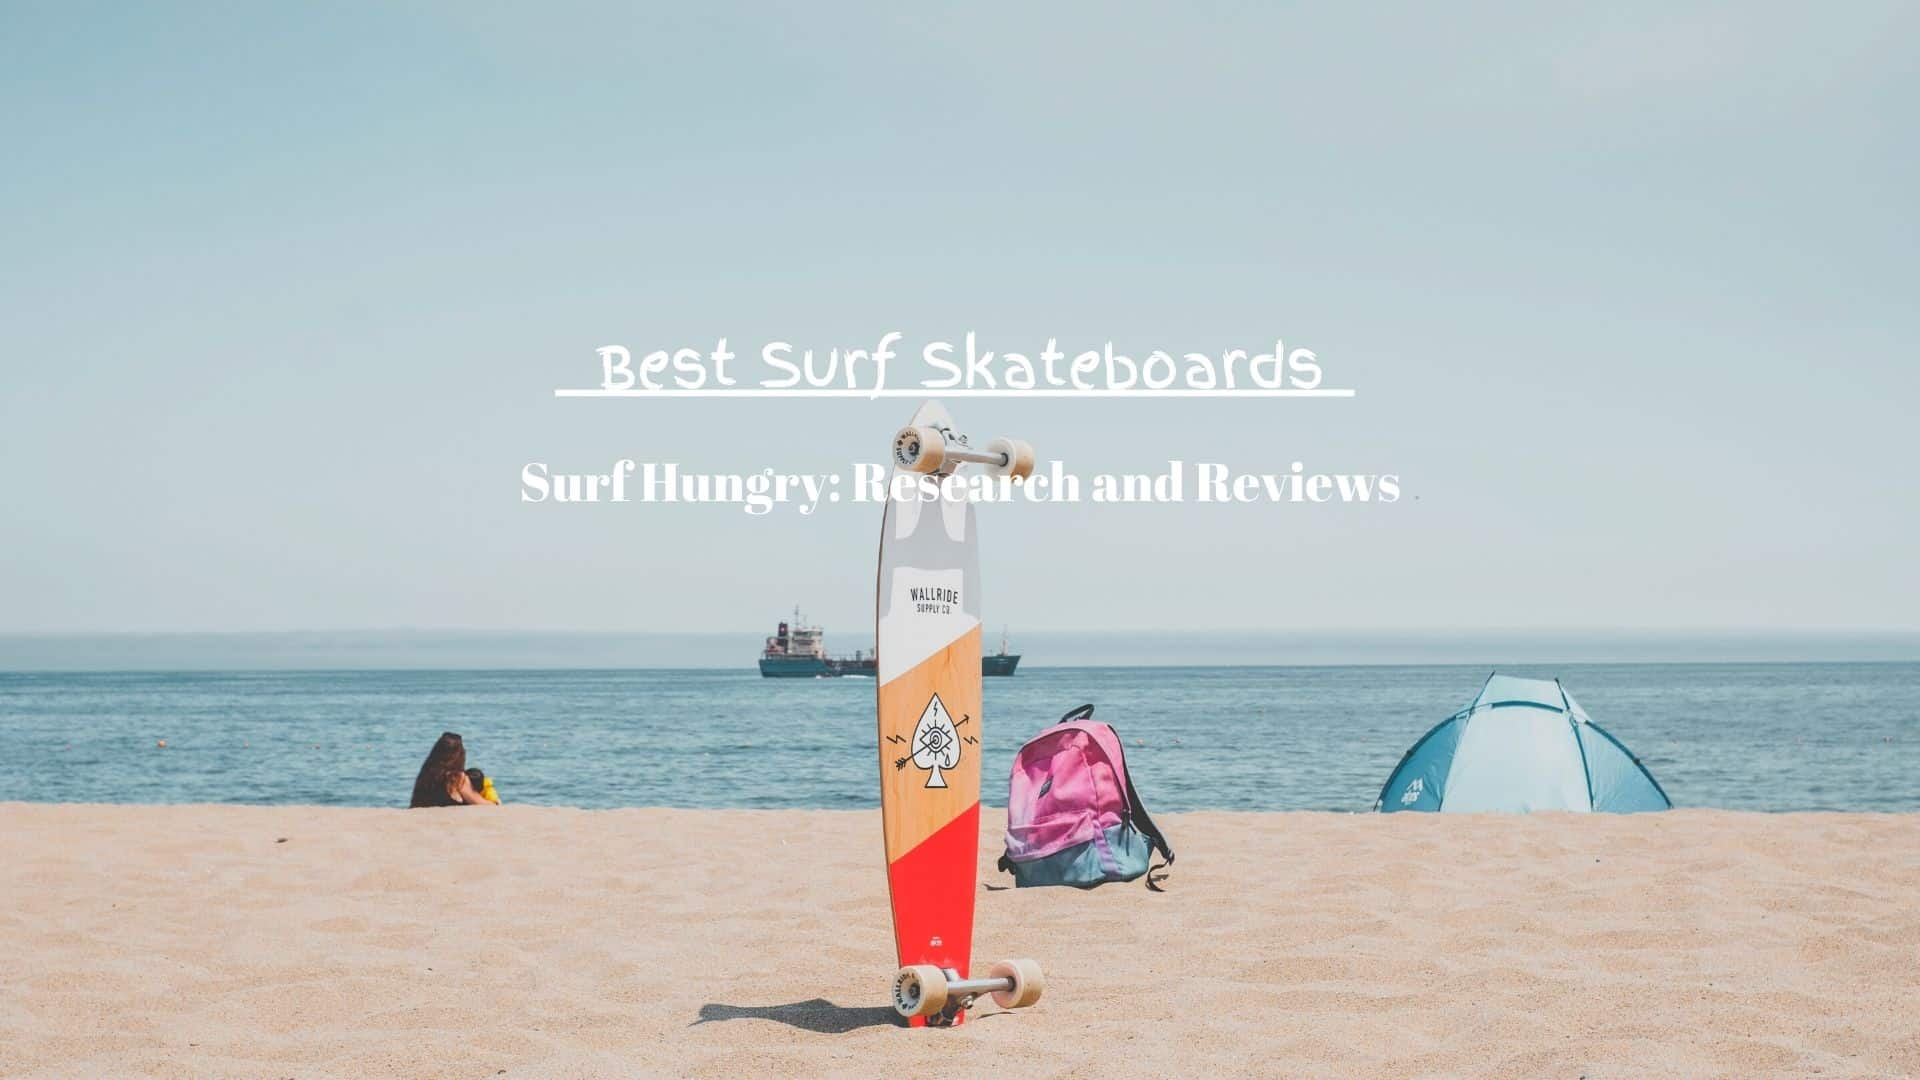 best surf skateboards